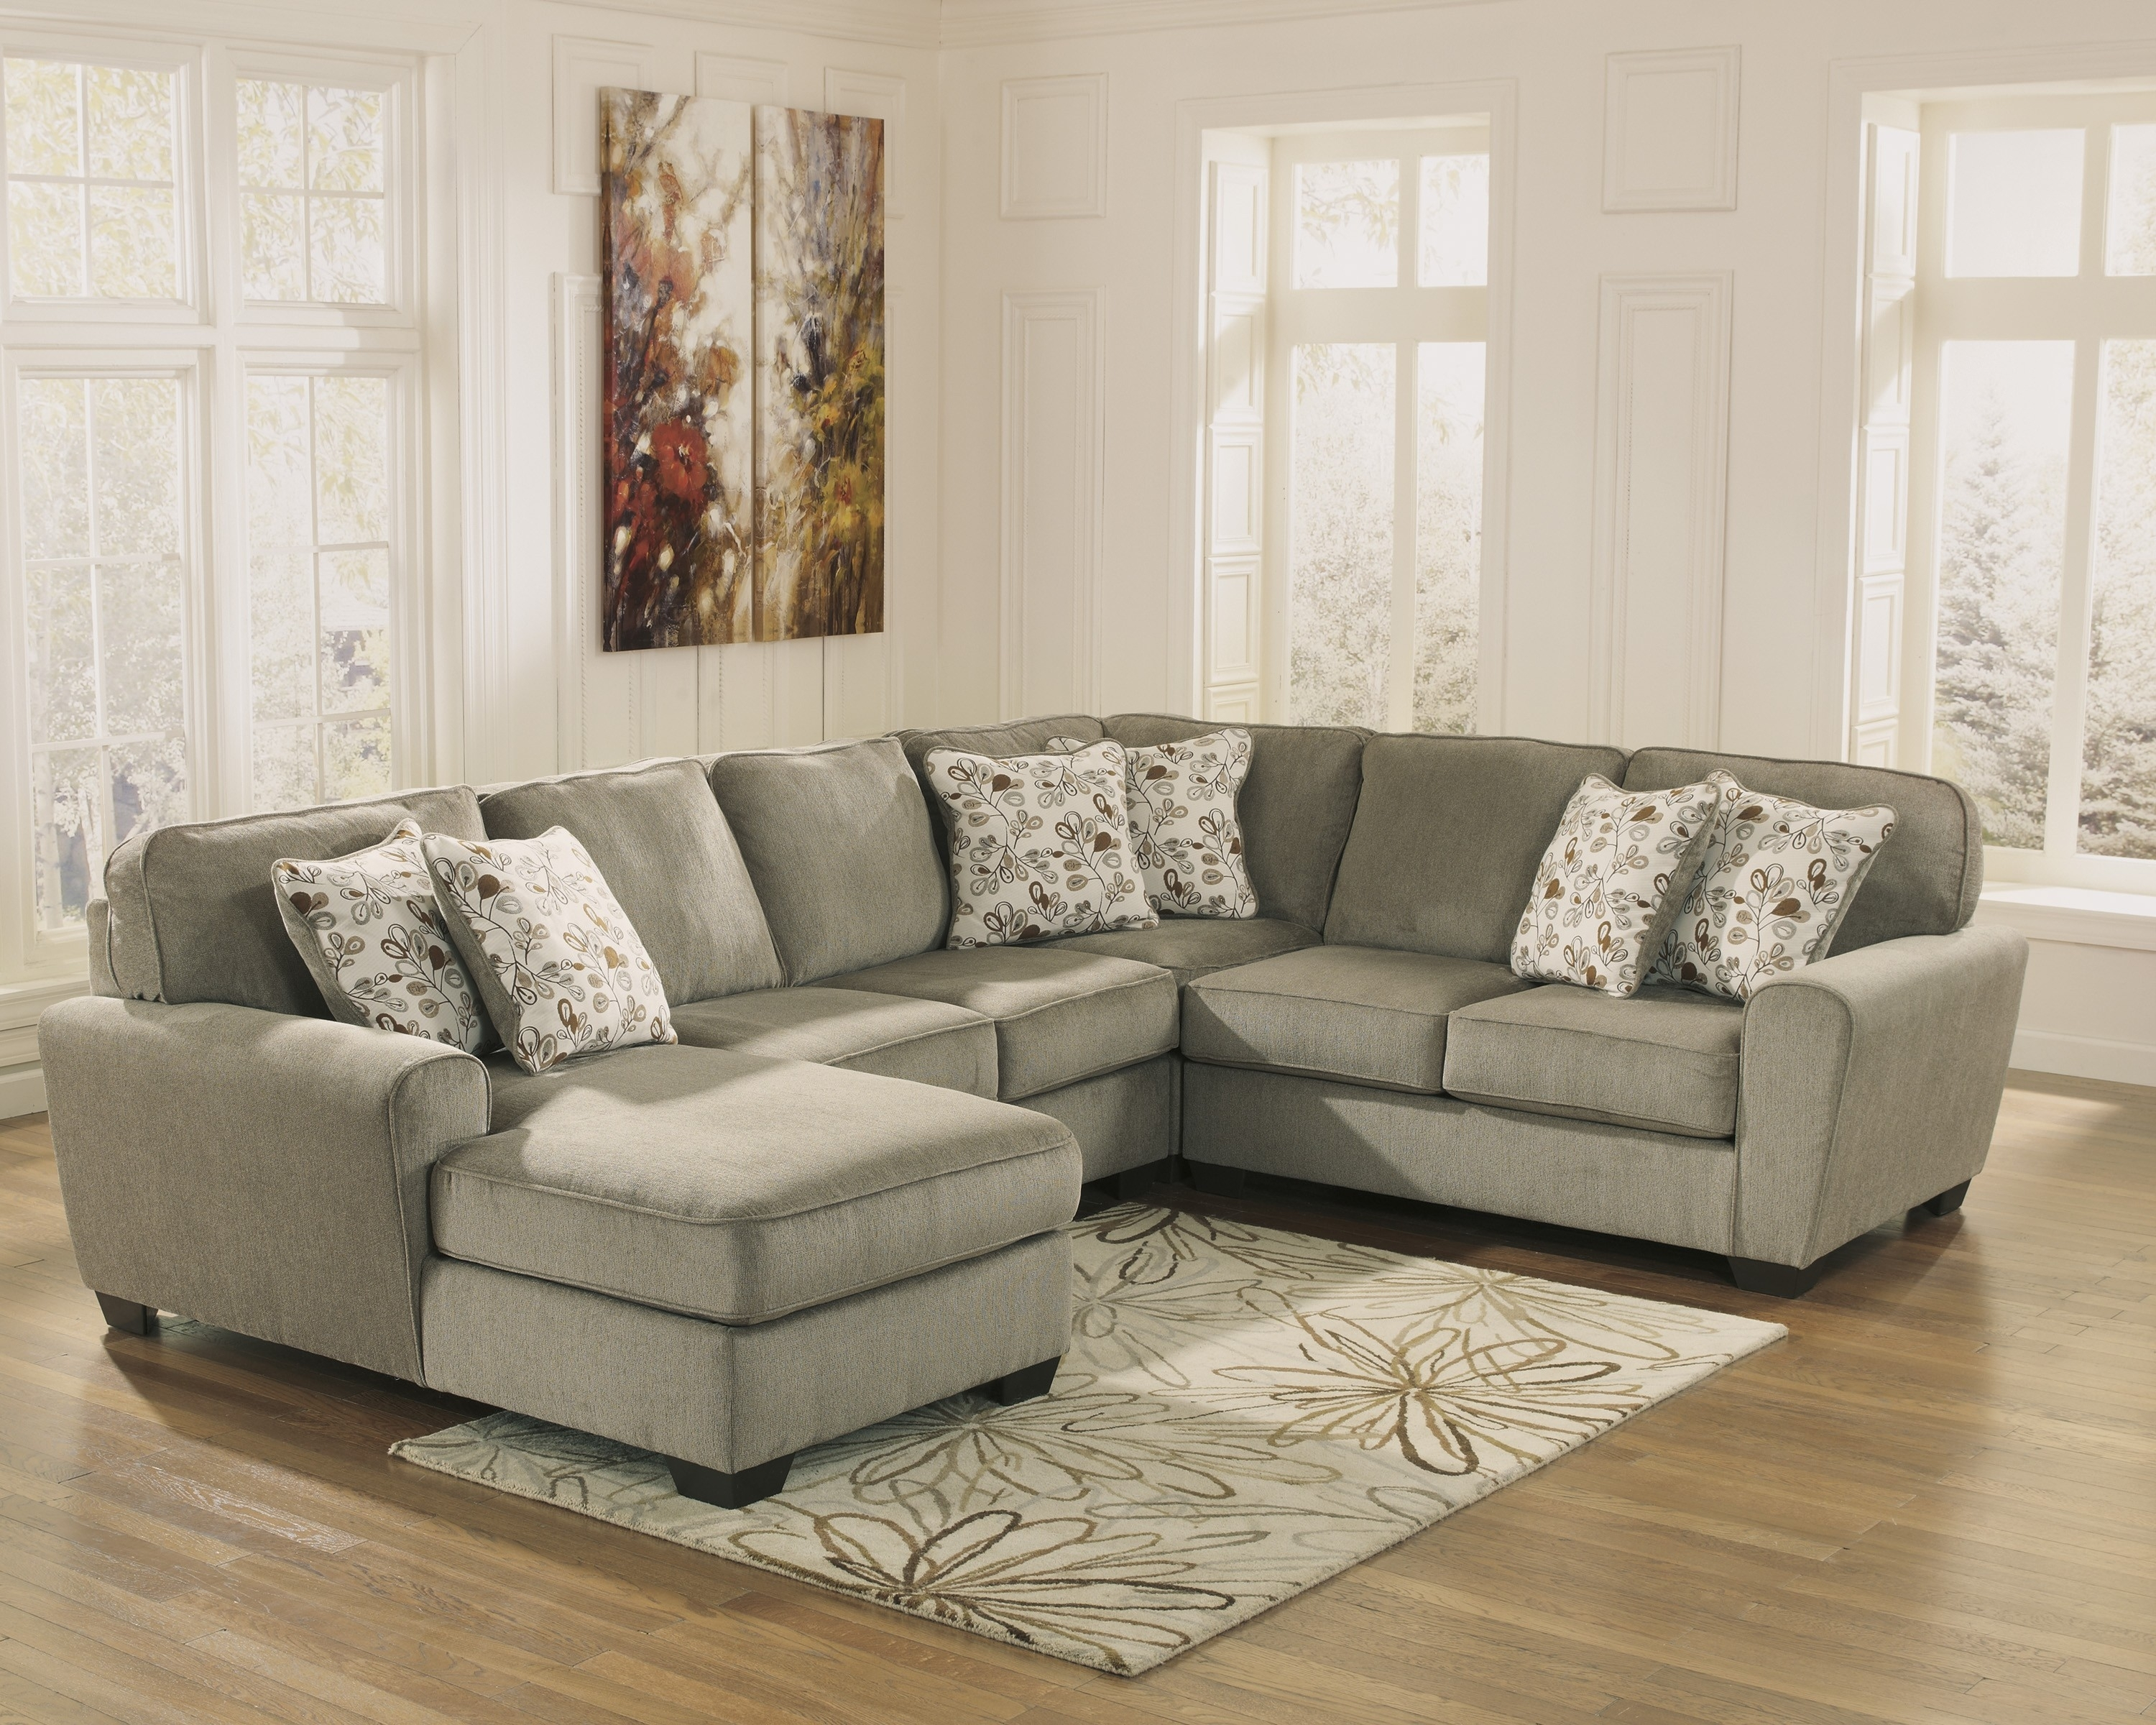 Patola Park Patina Piece Sectional Set With Left Arm Facing Chaise Within Collins Sofa Sectionals With Reversible Chaise (View 24 of 25)